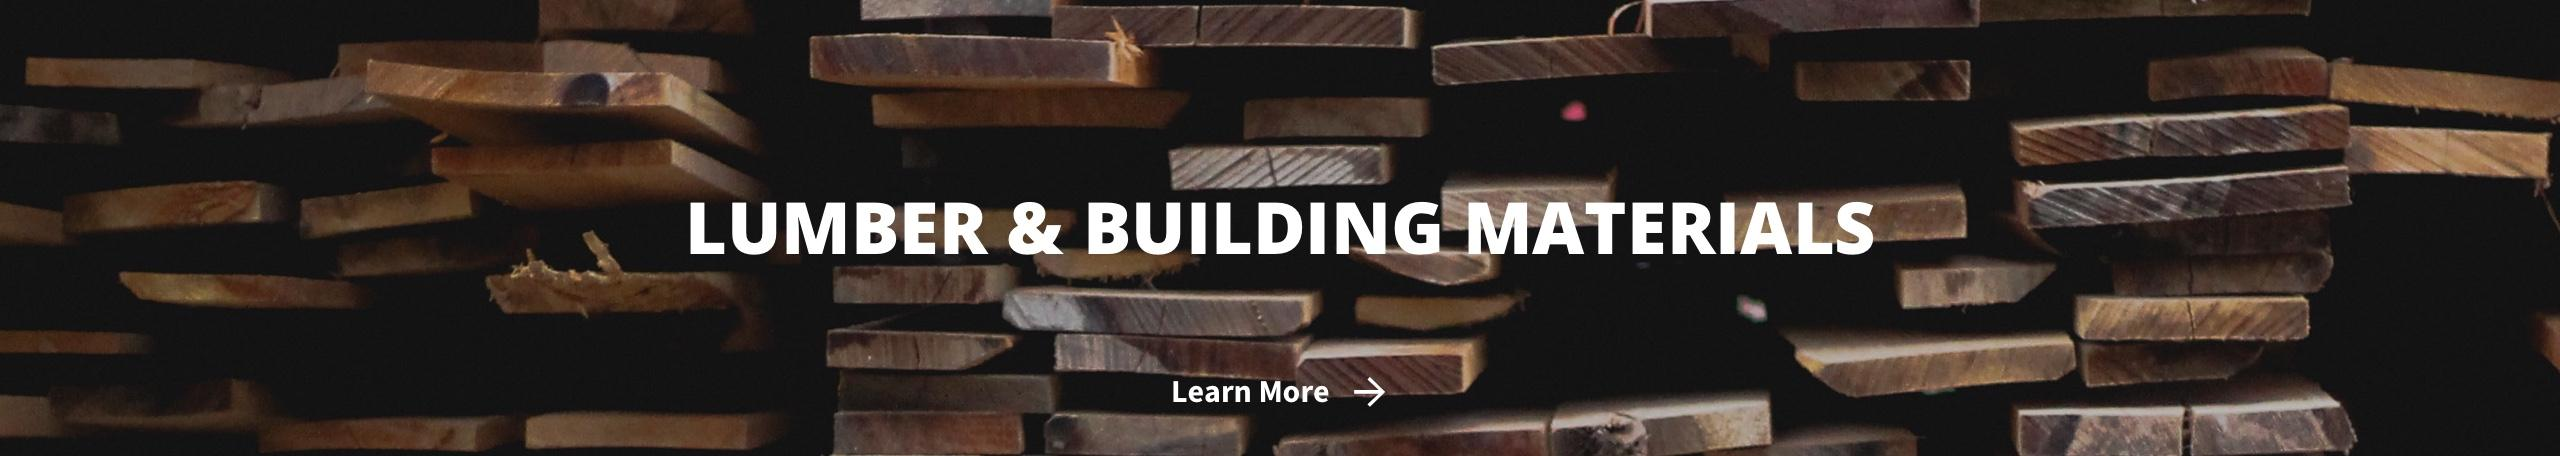 Lumber & Building Materials with lumber planks and Learn More link